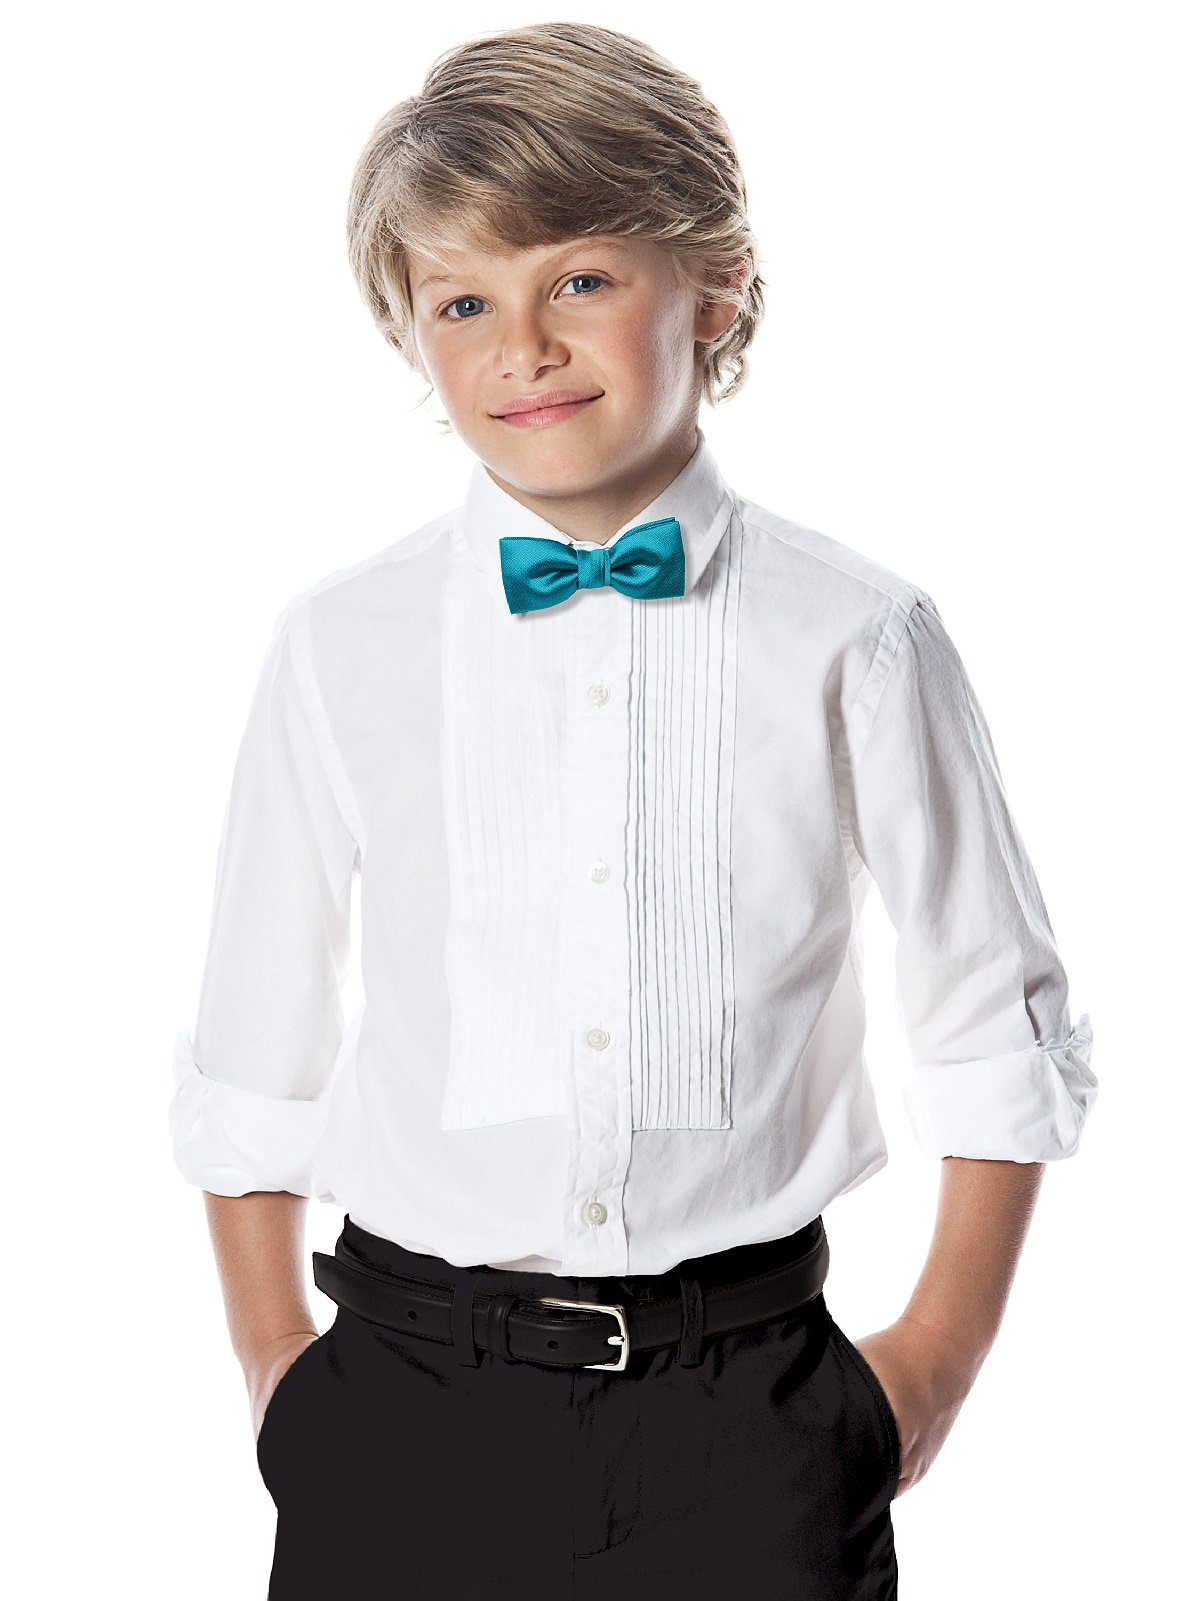 Boy's Paragon Jacquard Bowtie by After Six from Dessy - Oasis by Dessy (Image #2)